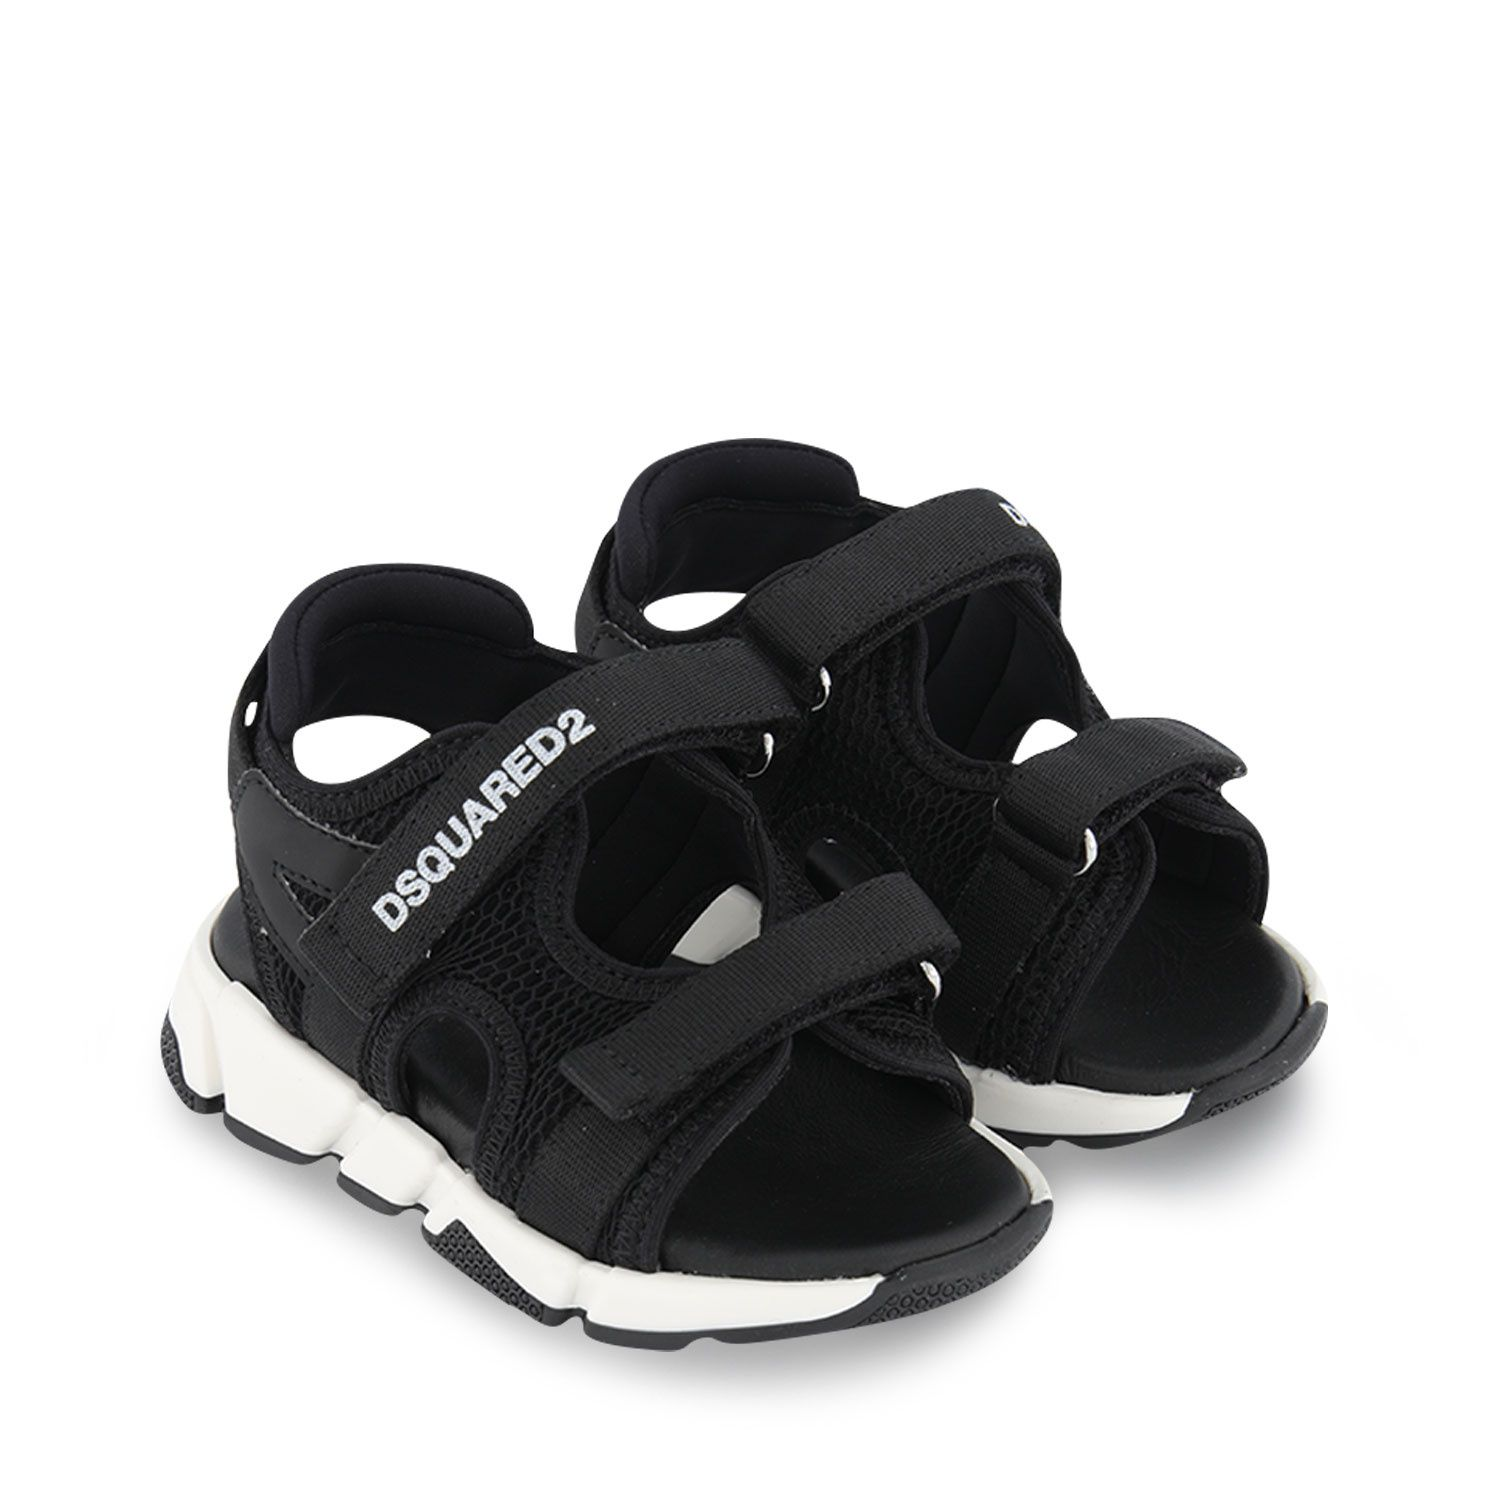 Picture of Dsquared2 66968 kids sandals black